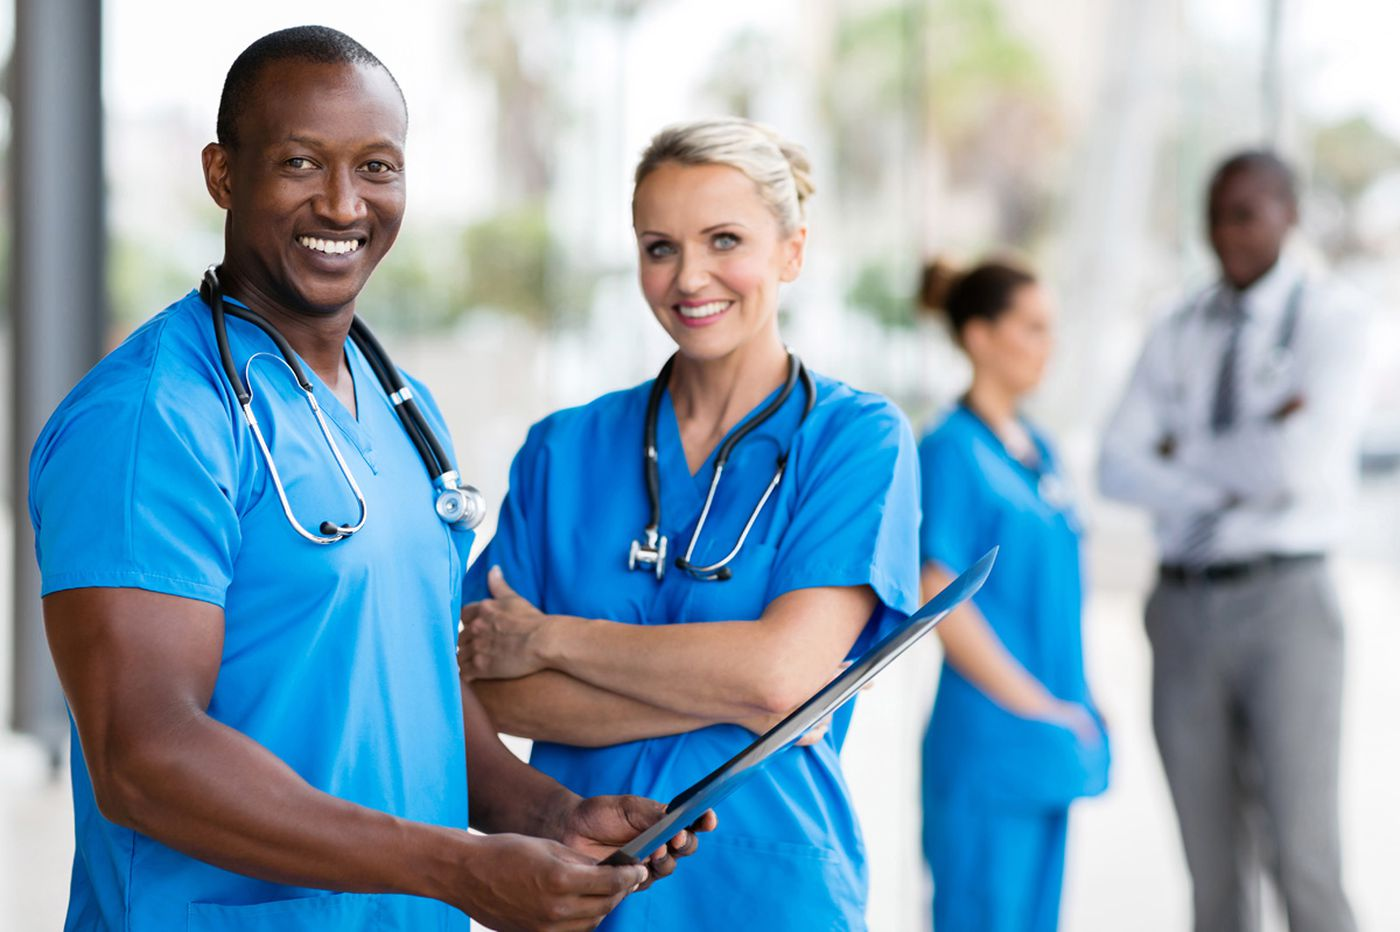 Opening the healthcare professionpipeline for every student in Philadelphia